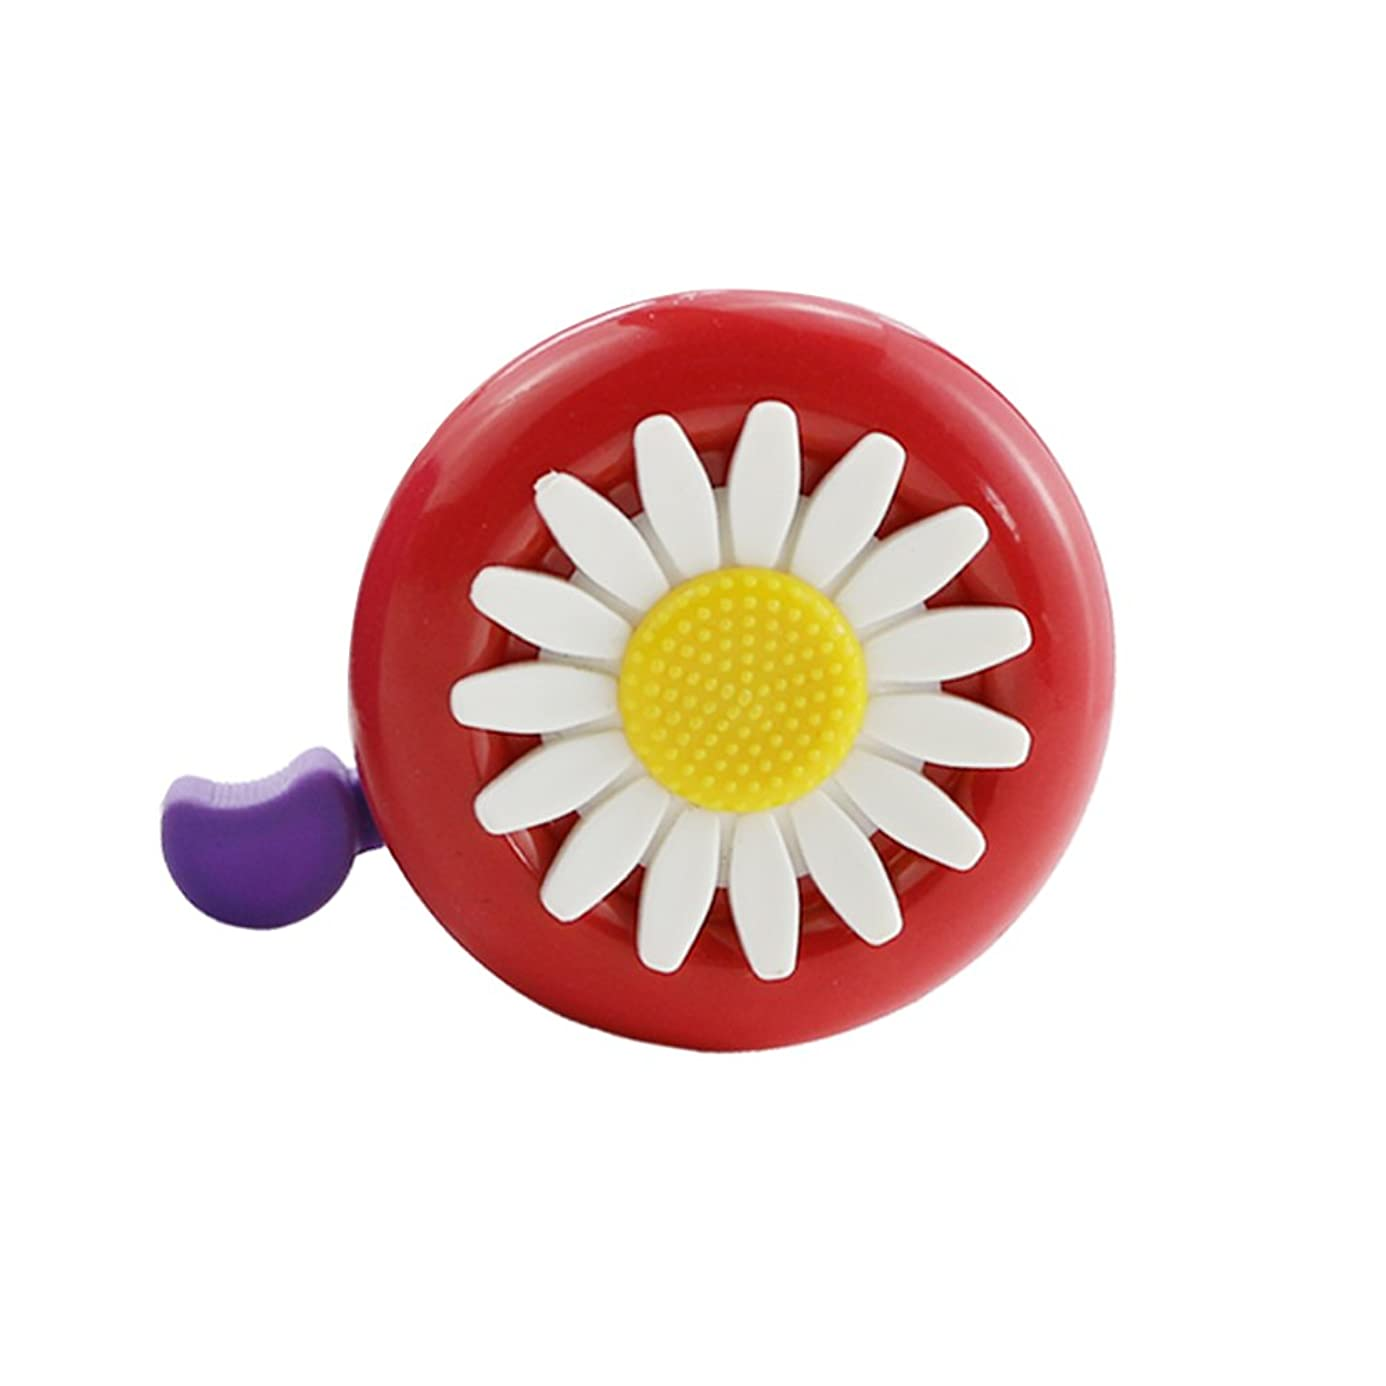 Oruuum Bicycle Bells, Children's Bicycle Bells, Bicycle Accessories, Bell with Plastic Flowers, Retro Bicycle Bells, and The Voice is Clear and Loud.